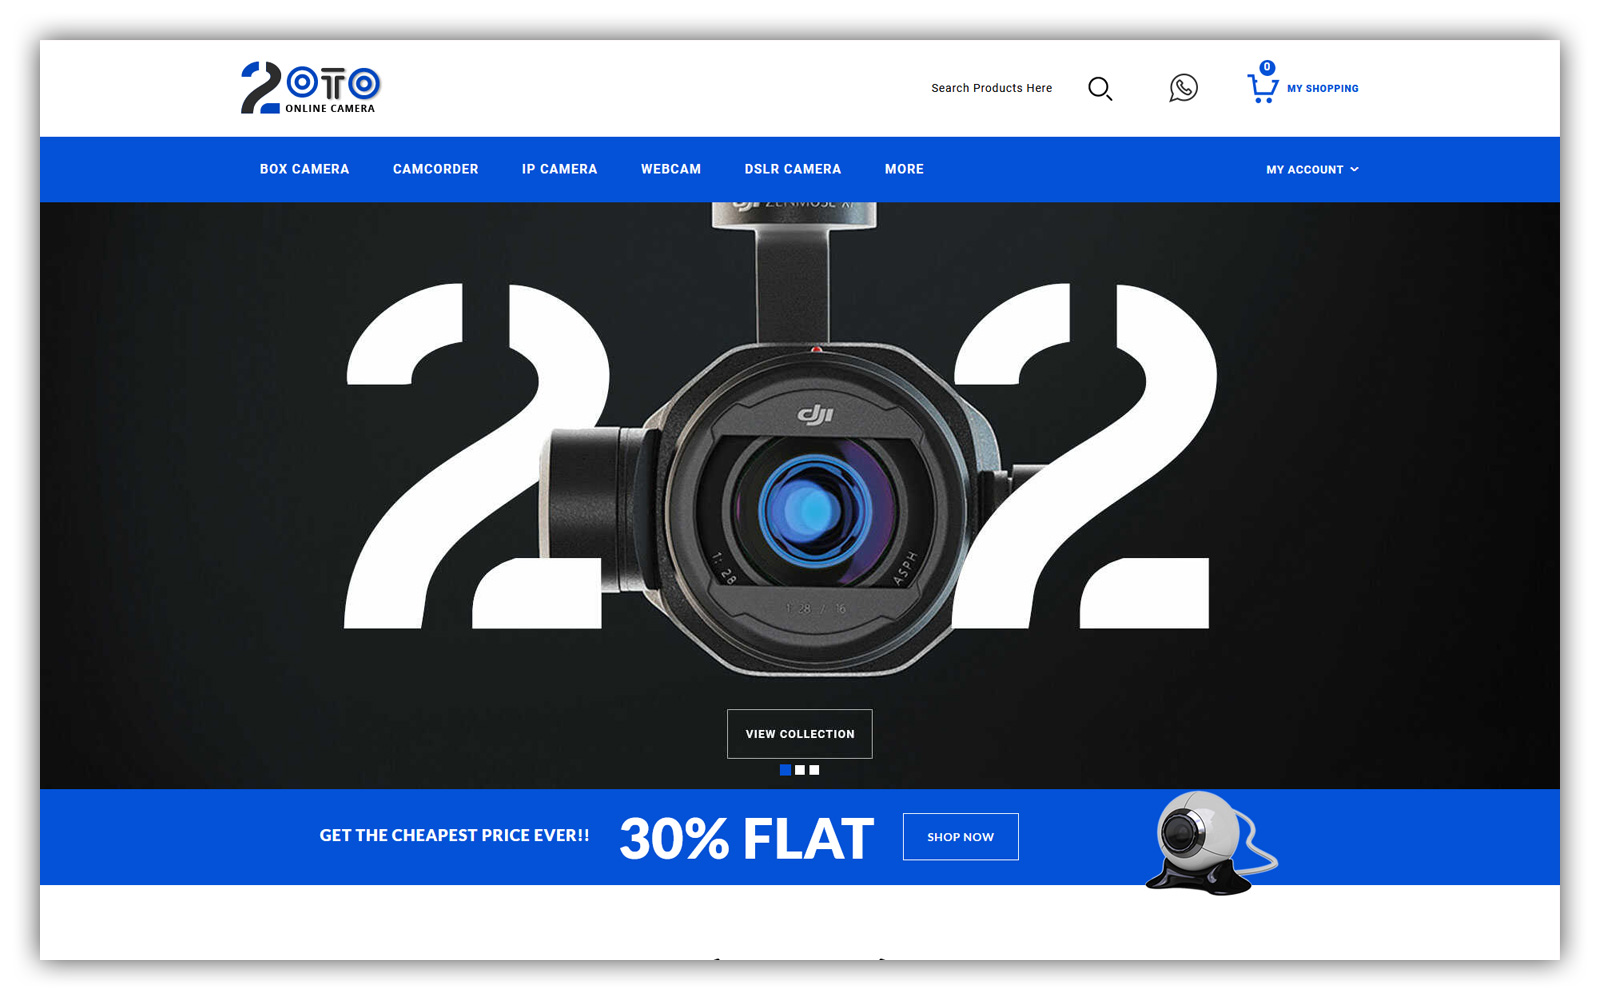 20TO - Camera Store OpenCart Template